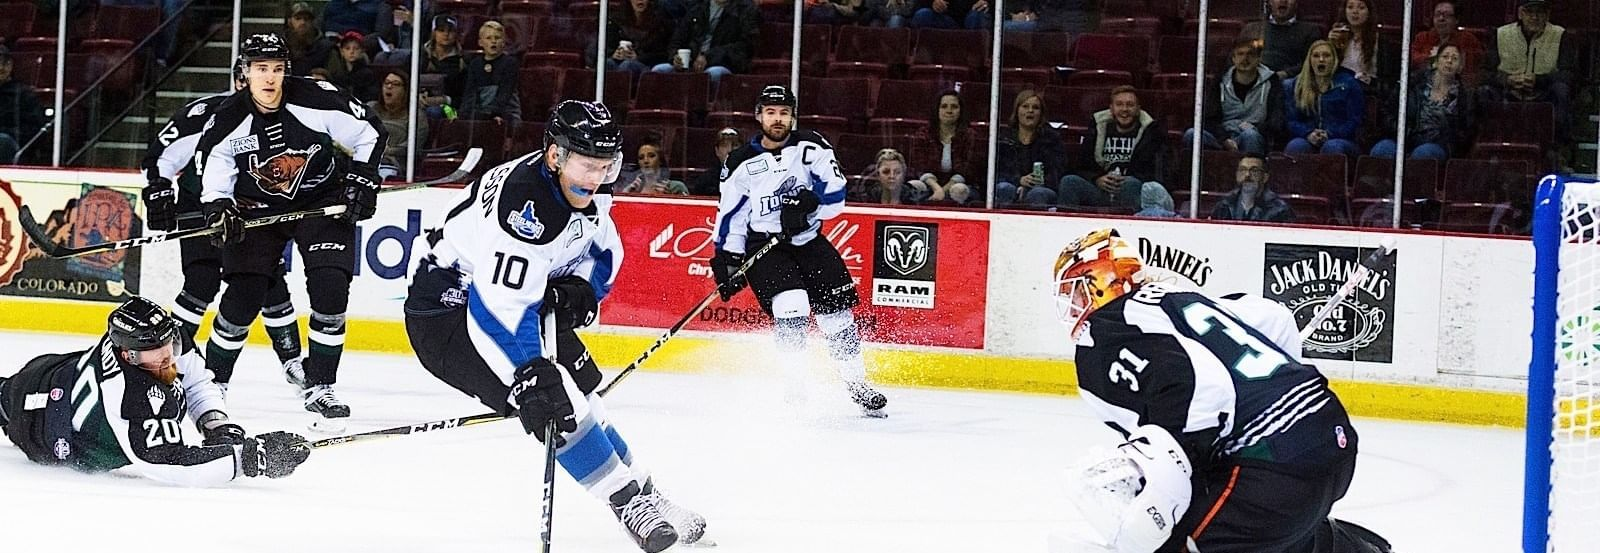 Ice hockey players going for a goal